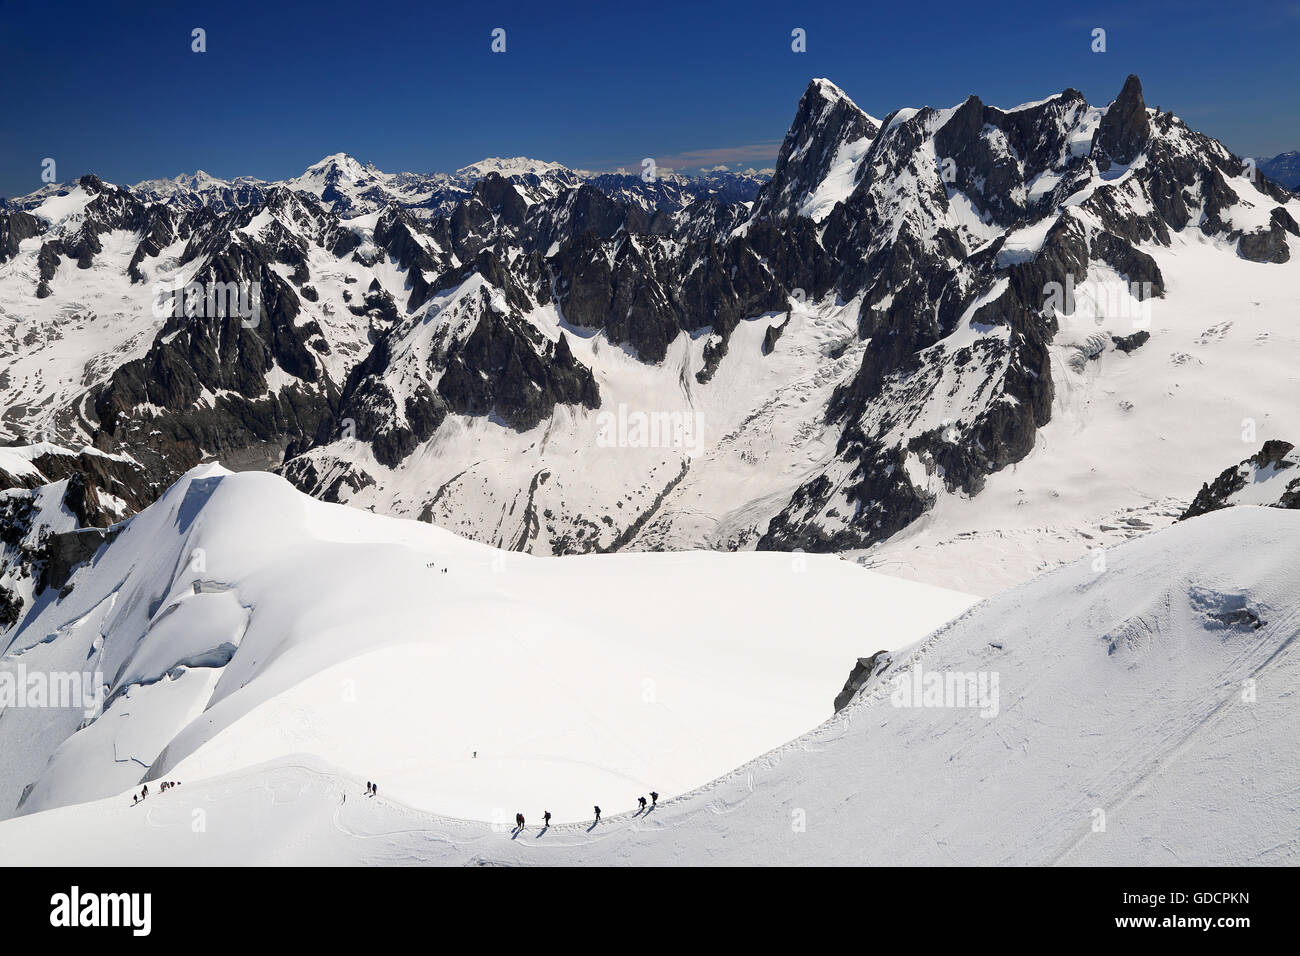 Climbers on French Alps Mountains near Aiguille du Midi, France, Europe - Stock Image